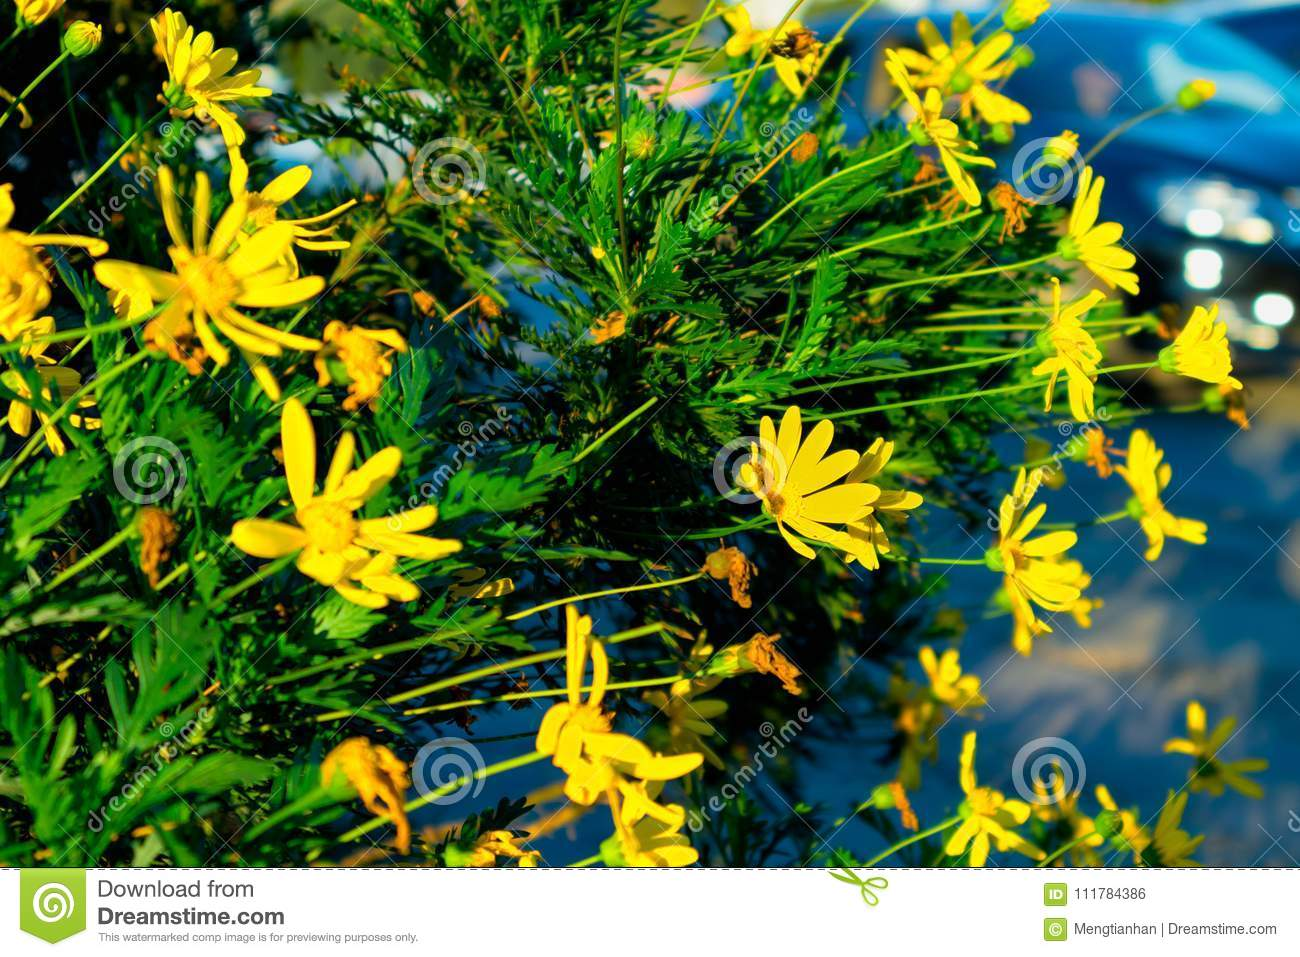 On the roadside wild calliopsis stock photo image of orchid the cosmos is an annual or perennial herb the root fusiform multiple roots or near stem base with adventitious roots stems glabrous or slightly pilose izmirmasajfo